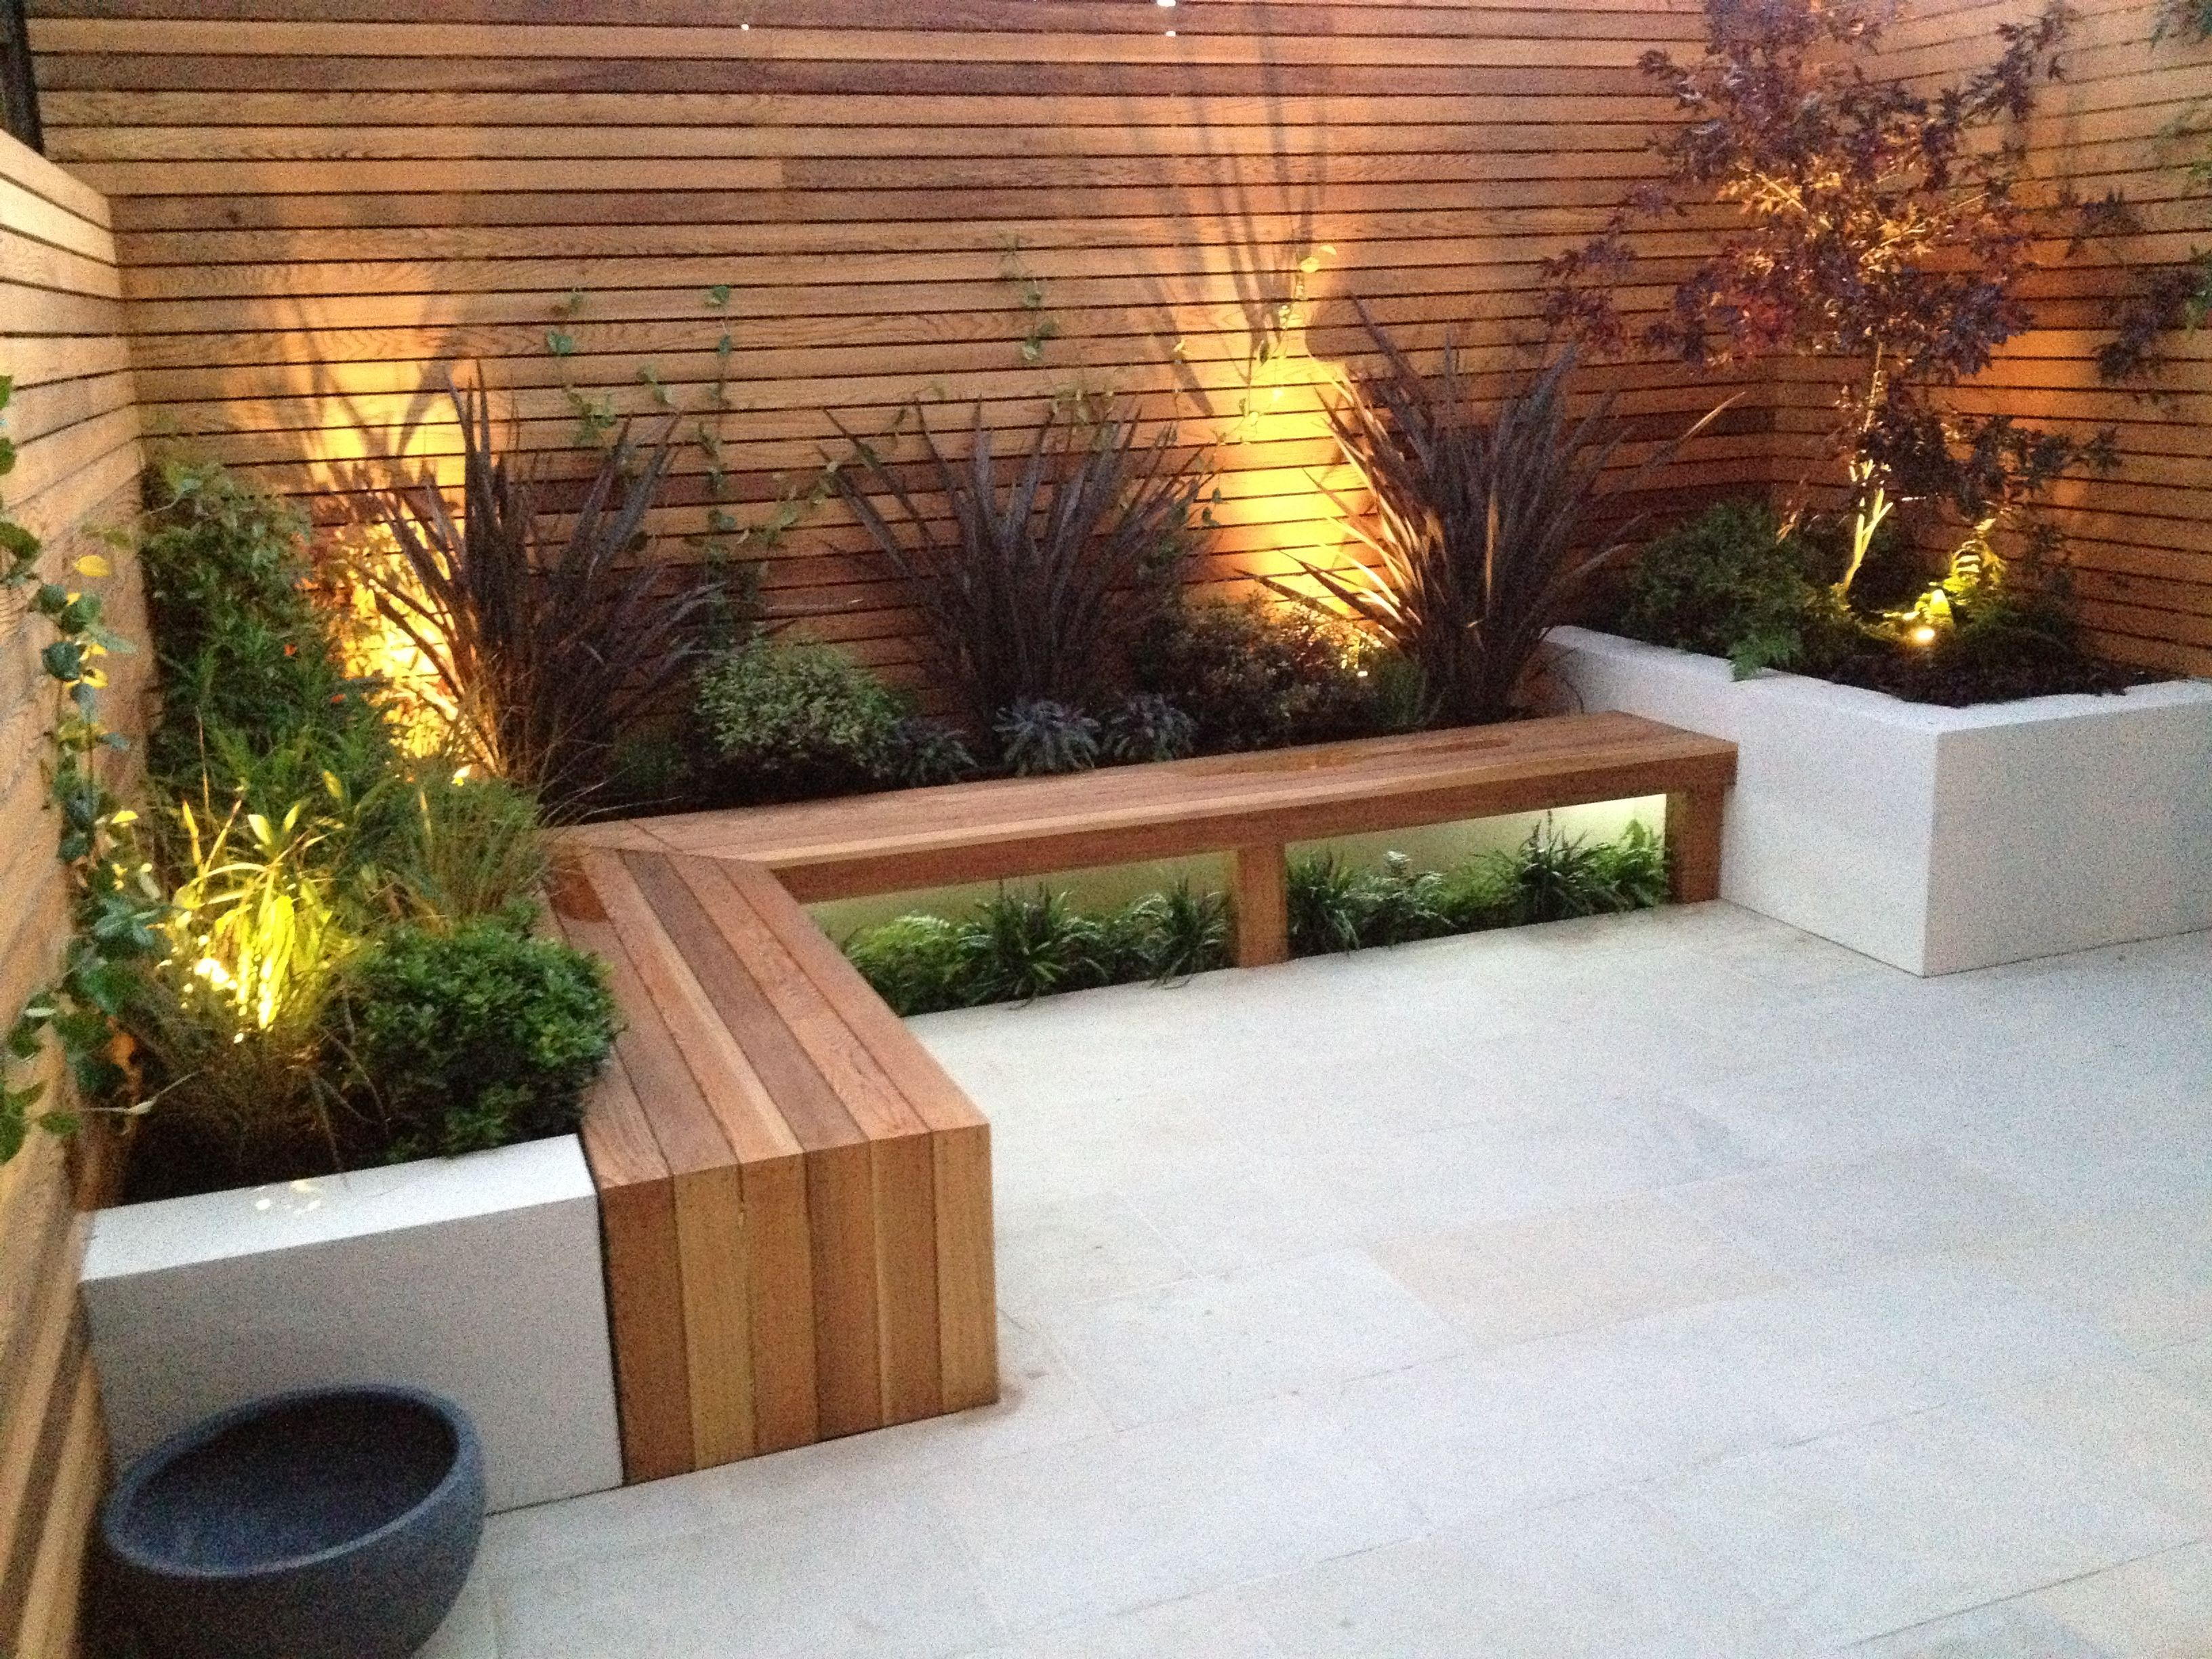 3 l shape bench as per drawing b with integrated planter 4 nice lighting 5 small bed - Garden ideas london ...